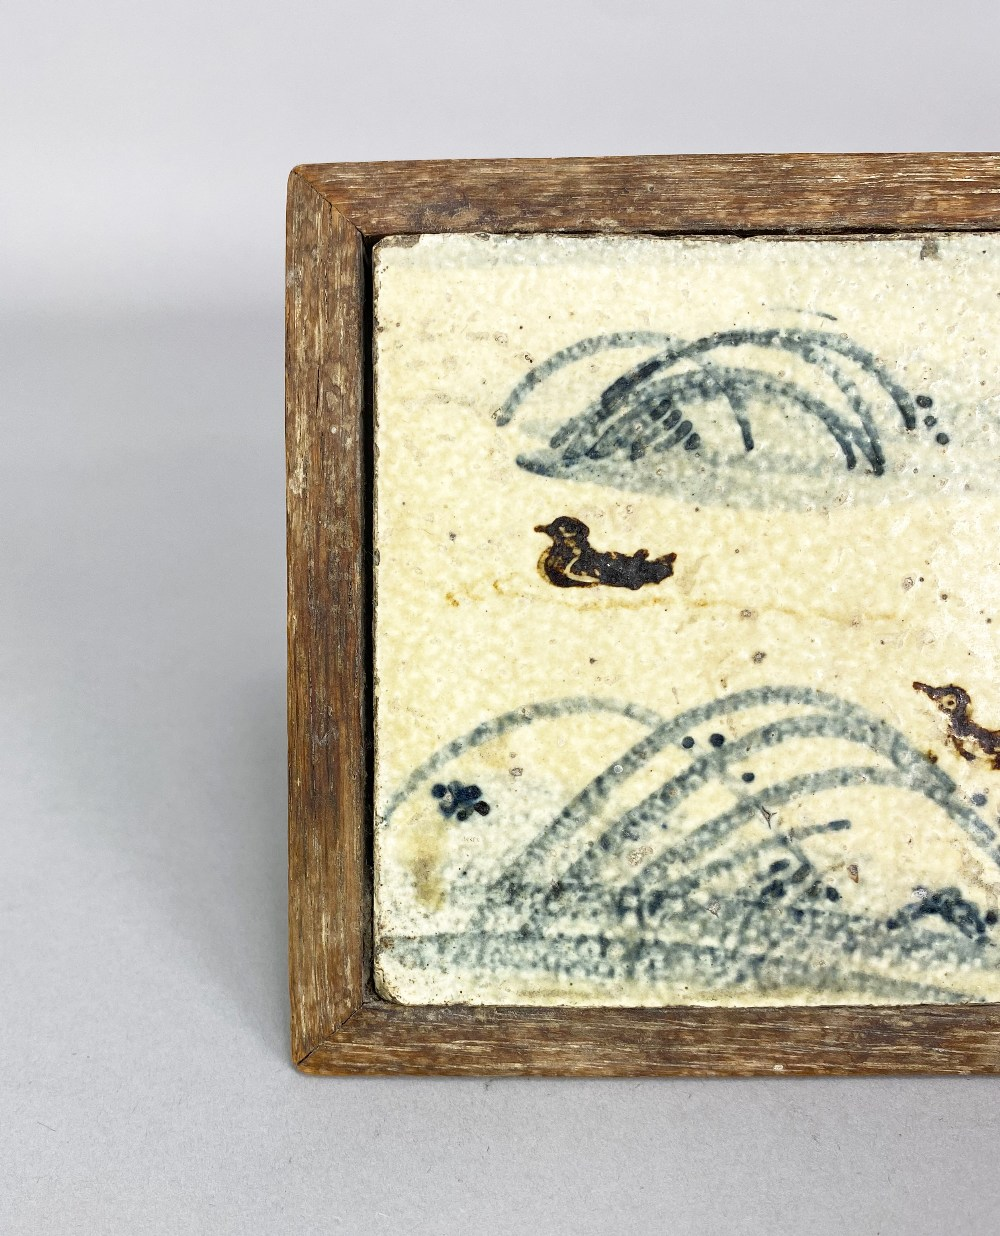 BERNARD LEACH (1887-1979) for Leach Pottery; a stoneware tile depicting ducks and reeds in - Image 2 of 4